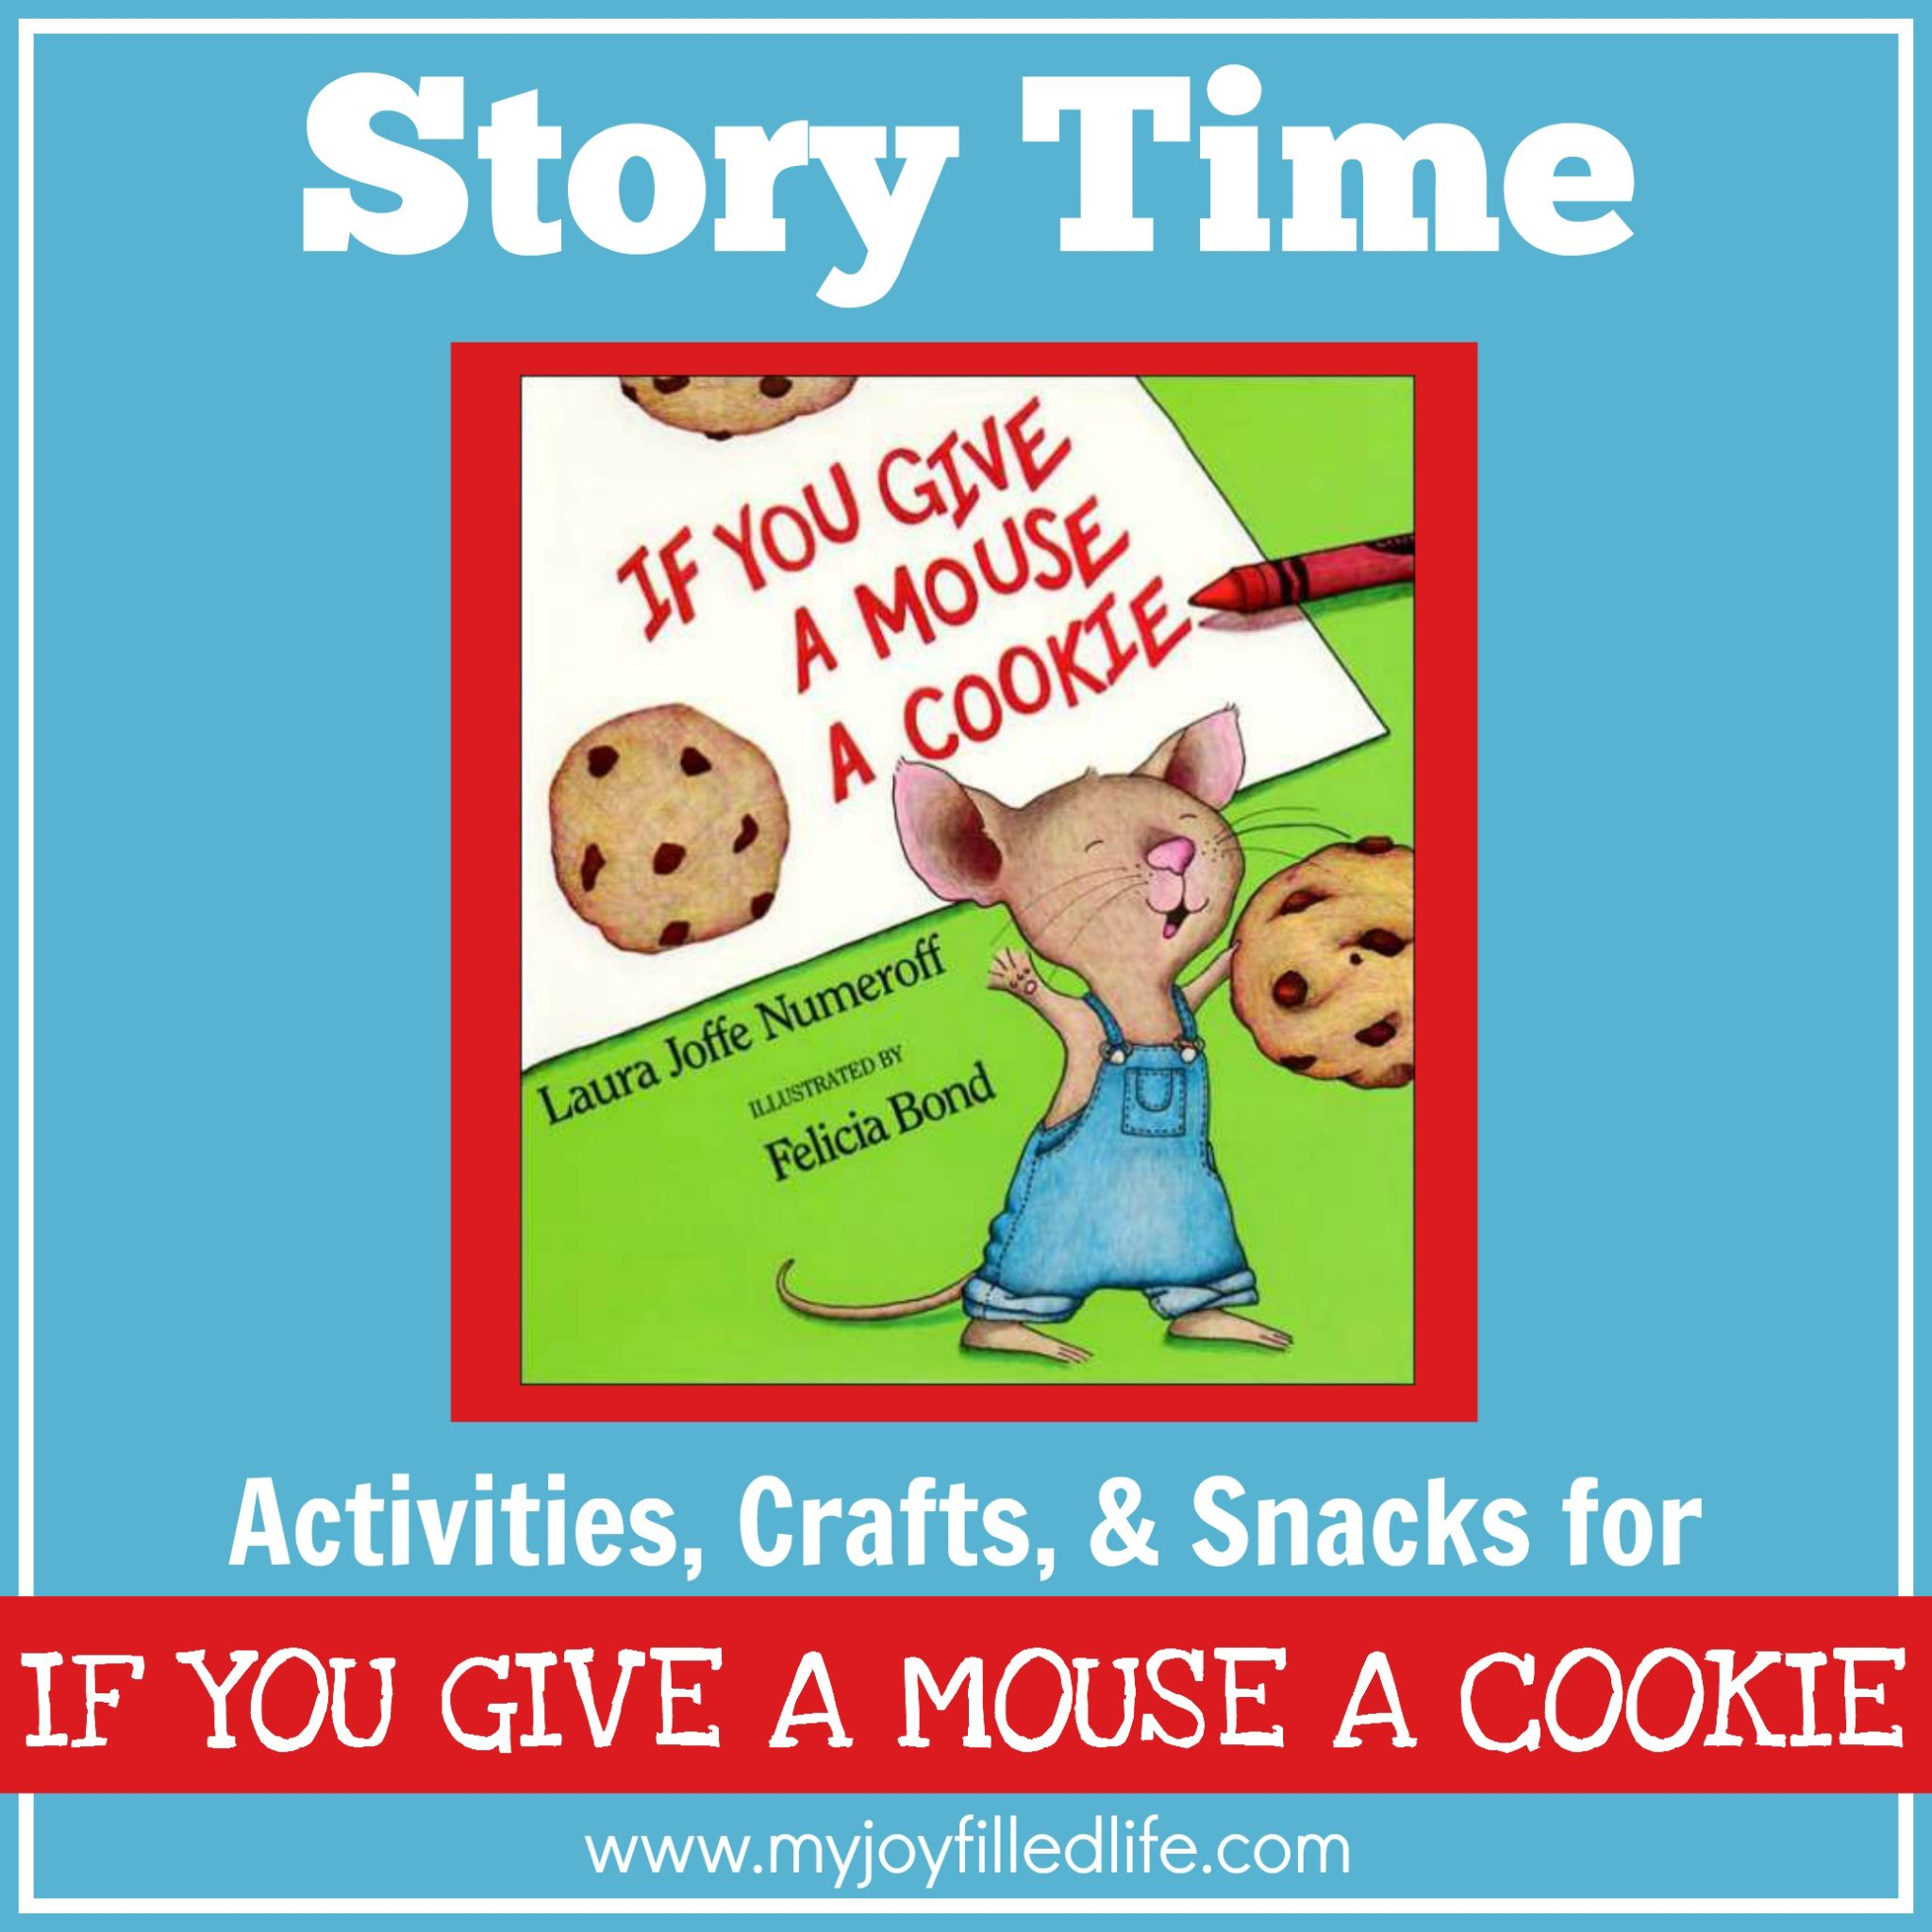 if you give a mouse a cookie story time activities